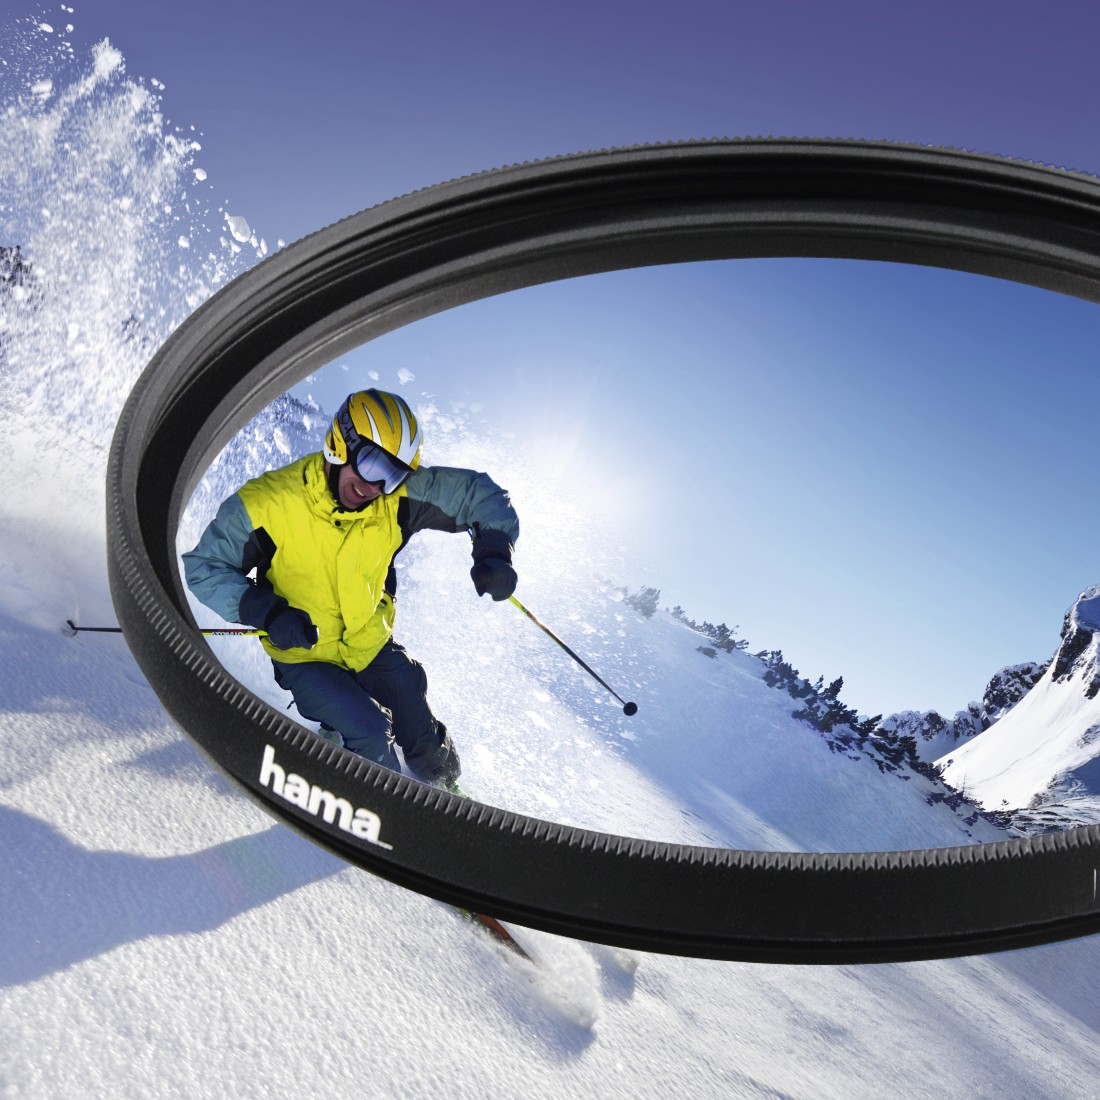 awx2 High-Res Appliance 2 - Hama, UV Filter 390, HTMC multi-coated, 62.0 mm